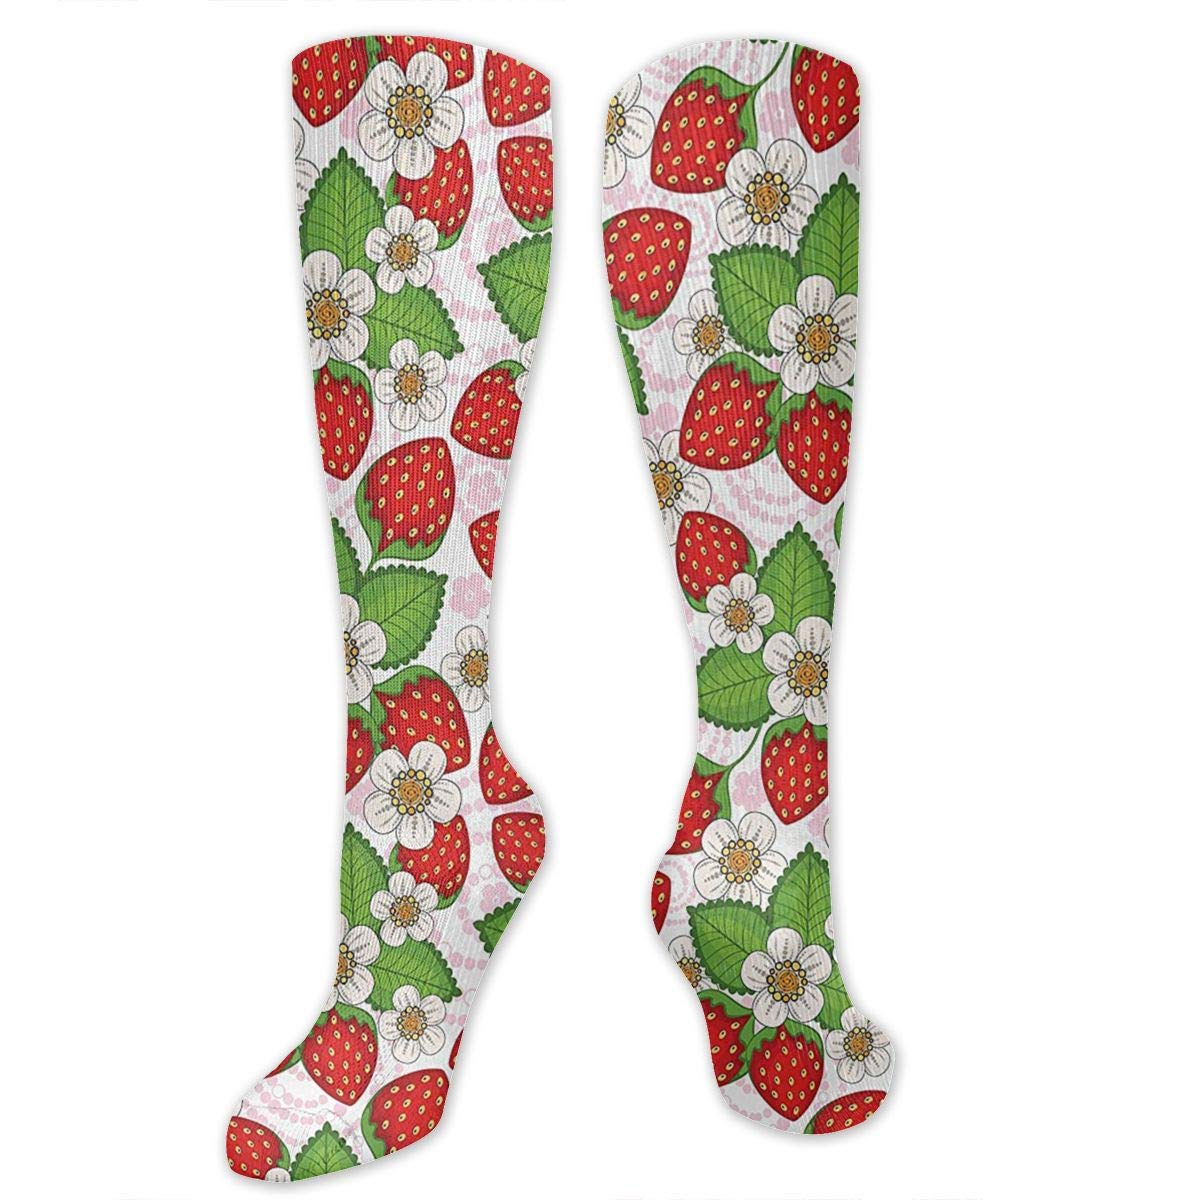 Chanwazibibiliu Floral Pattern with Strawberries Flowers Mens Colorful Dress Socks Funky Men Multicolored Pattern Fashionable Fun Crew Cotton Socks